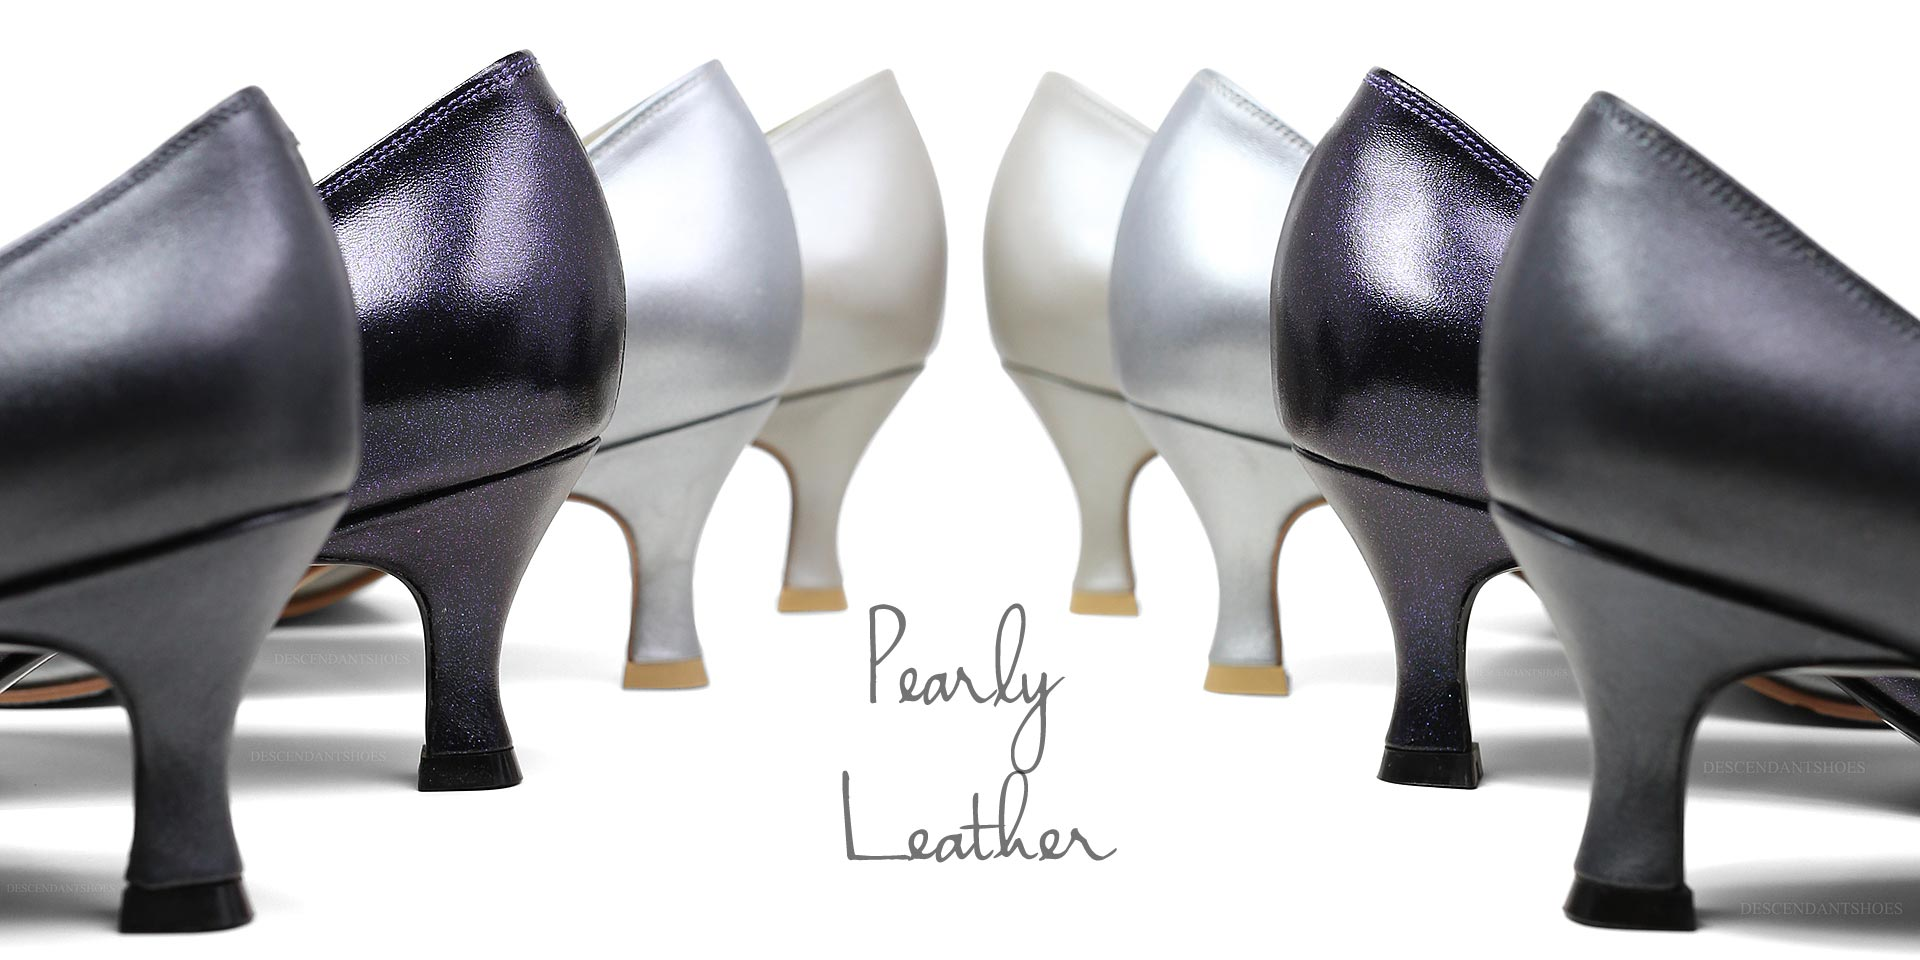 pearl leather